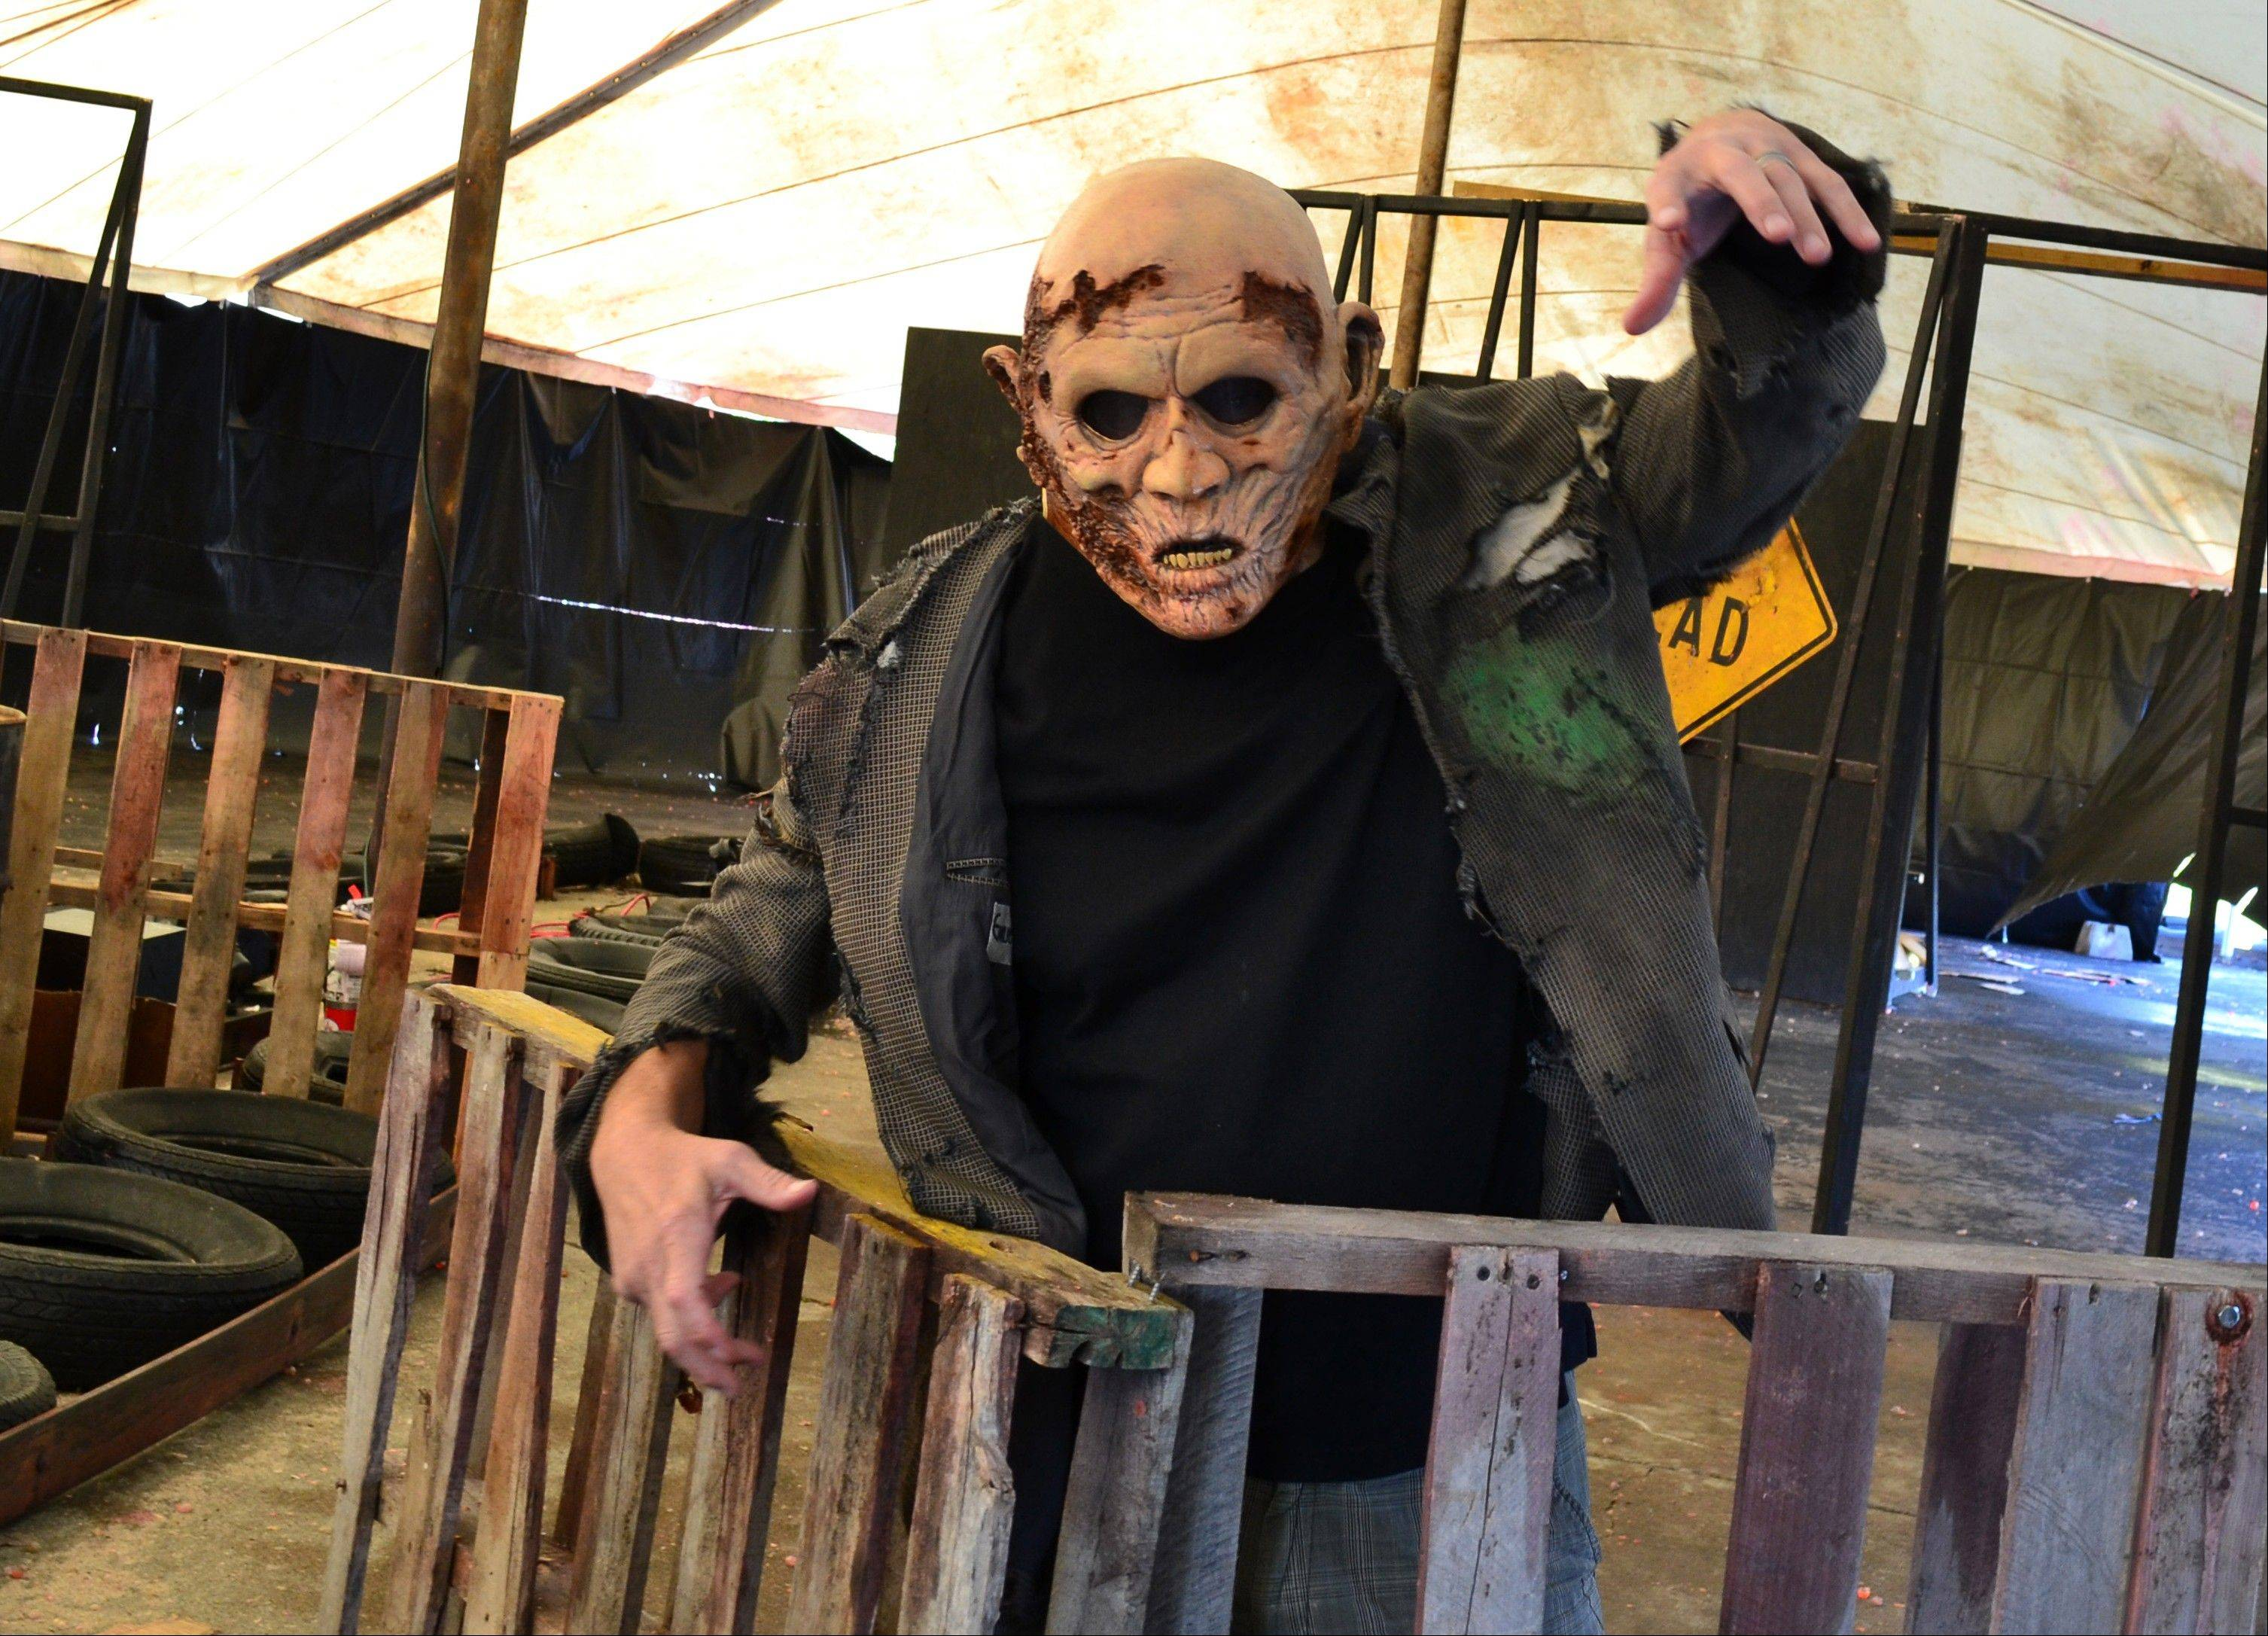 At Saint Lucifer's Haunted Asylum in Flint, Mich., a zombie awaits his fate from paintball-shooting visitors. The shoot-the-zombie game is part of a trend in which Halloween attractions are becoming more interactive.